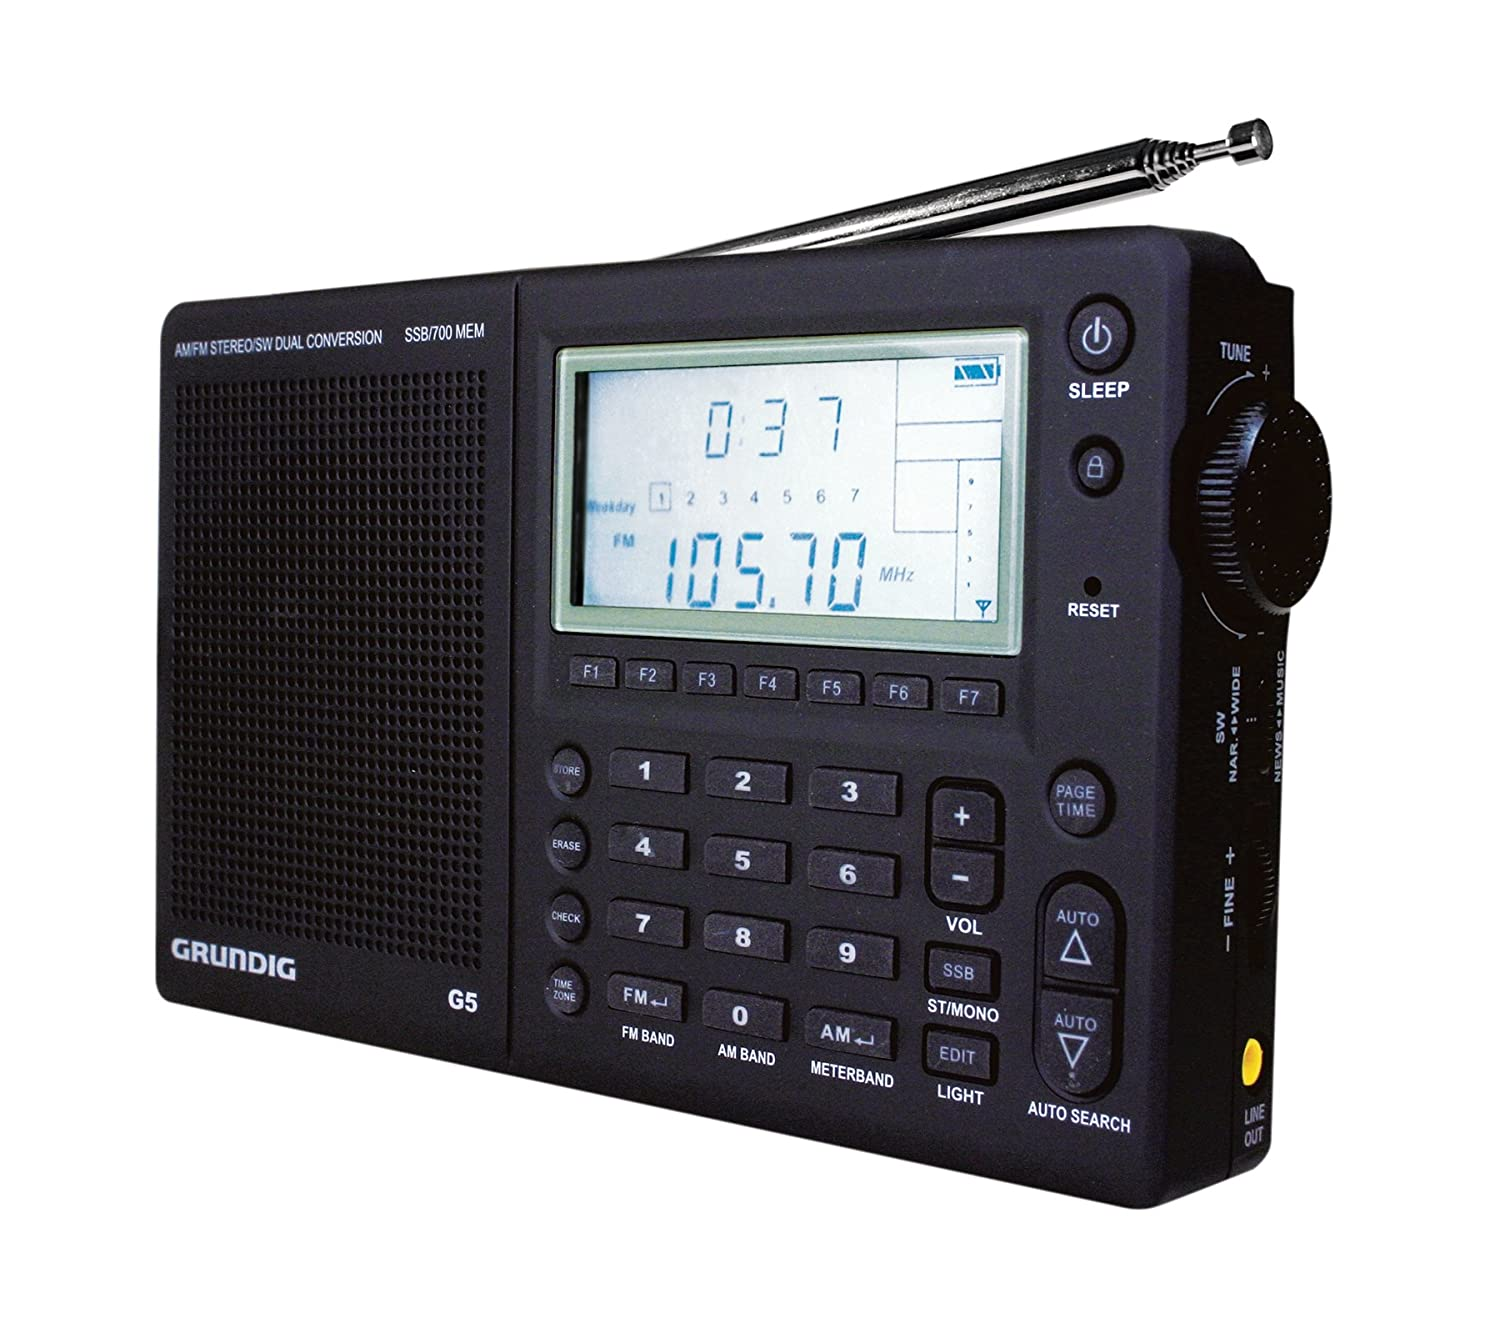 Grundig G5 Am Fm Shortwave Portable Radio With Ssb Simple Transmitter Circuit Use Your Mobile Phones Discontinued By Manufacturer Home Audio Theater